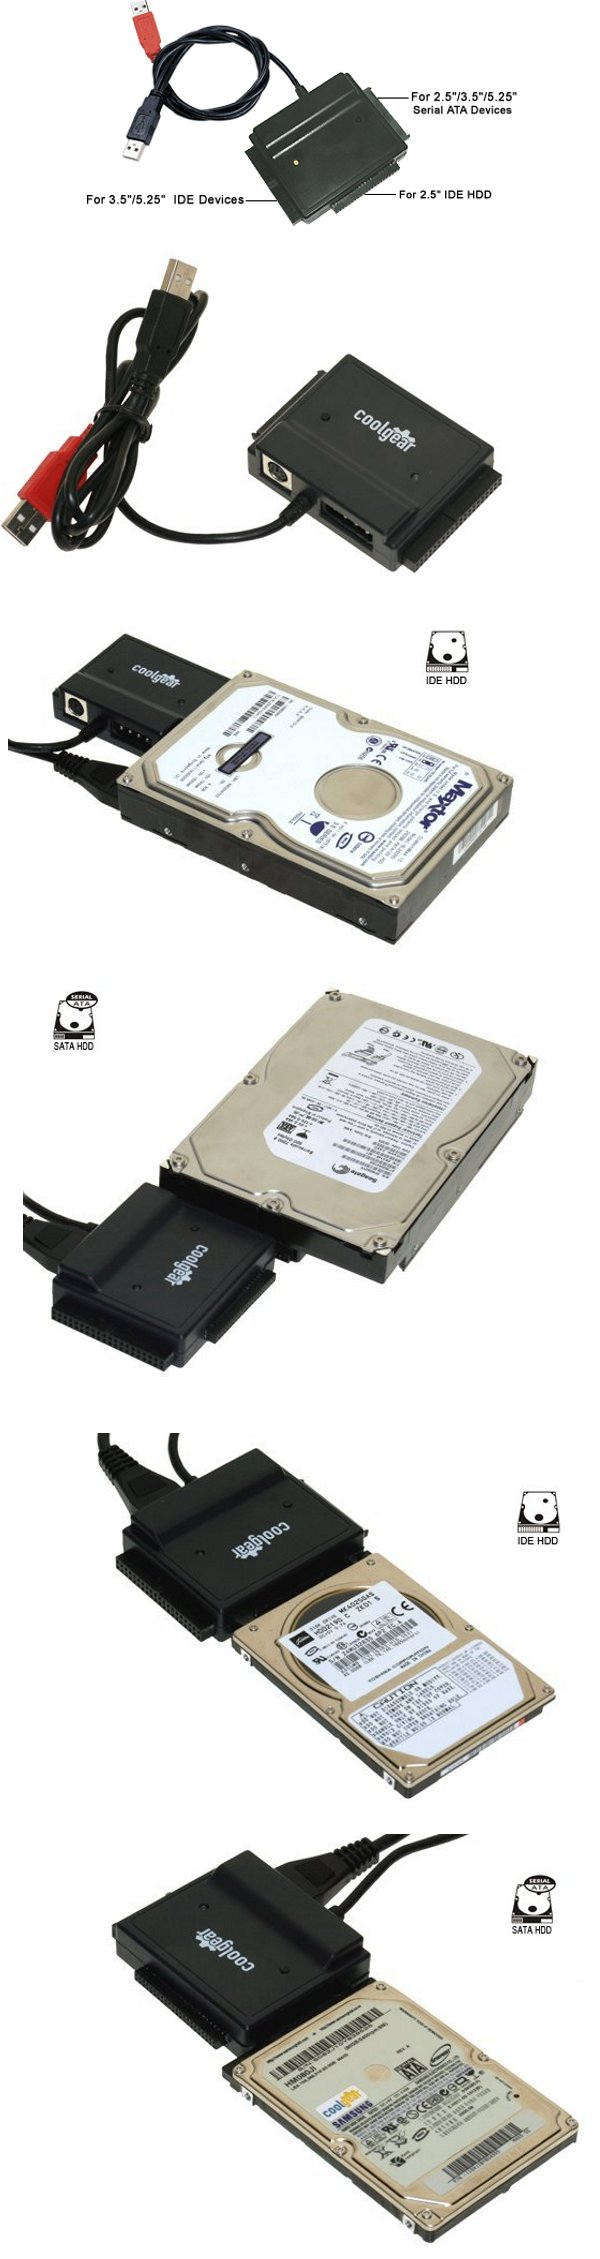 USB 2.0 to IDE/SATA Adapter, Works with 2.5/3.5/5.25  HDD